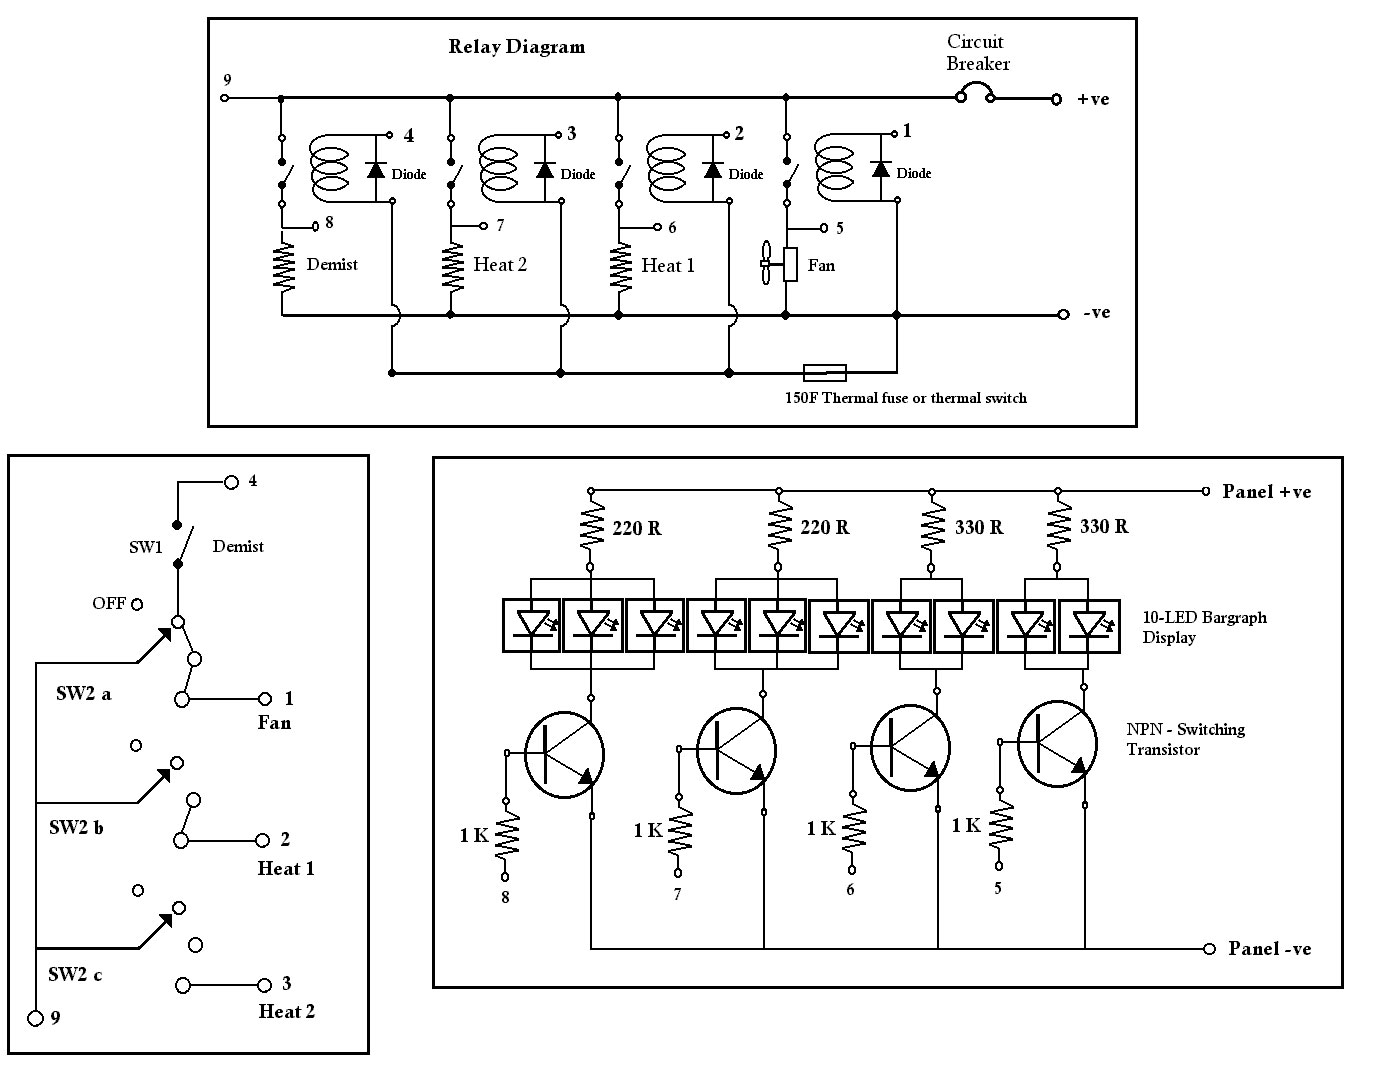 HTR_Circuit?resize=665%2C529 electric heater wiring diagram wiring diagram Electric Heater Wiring Diagram at soozxer.org